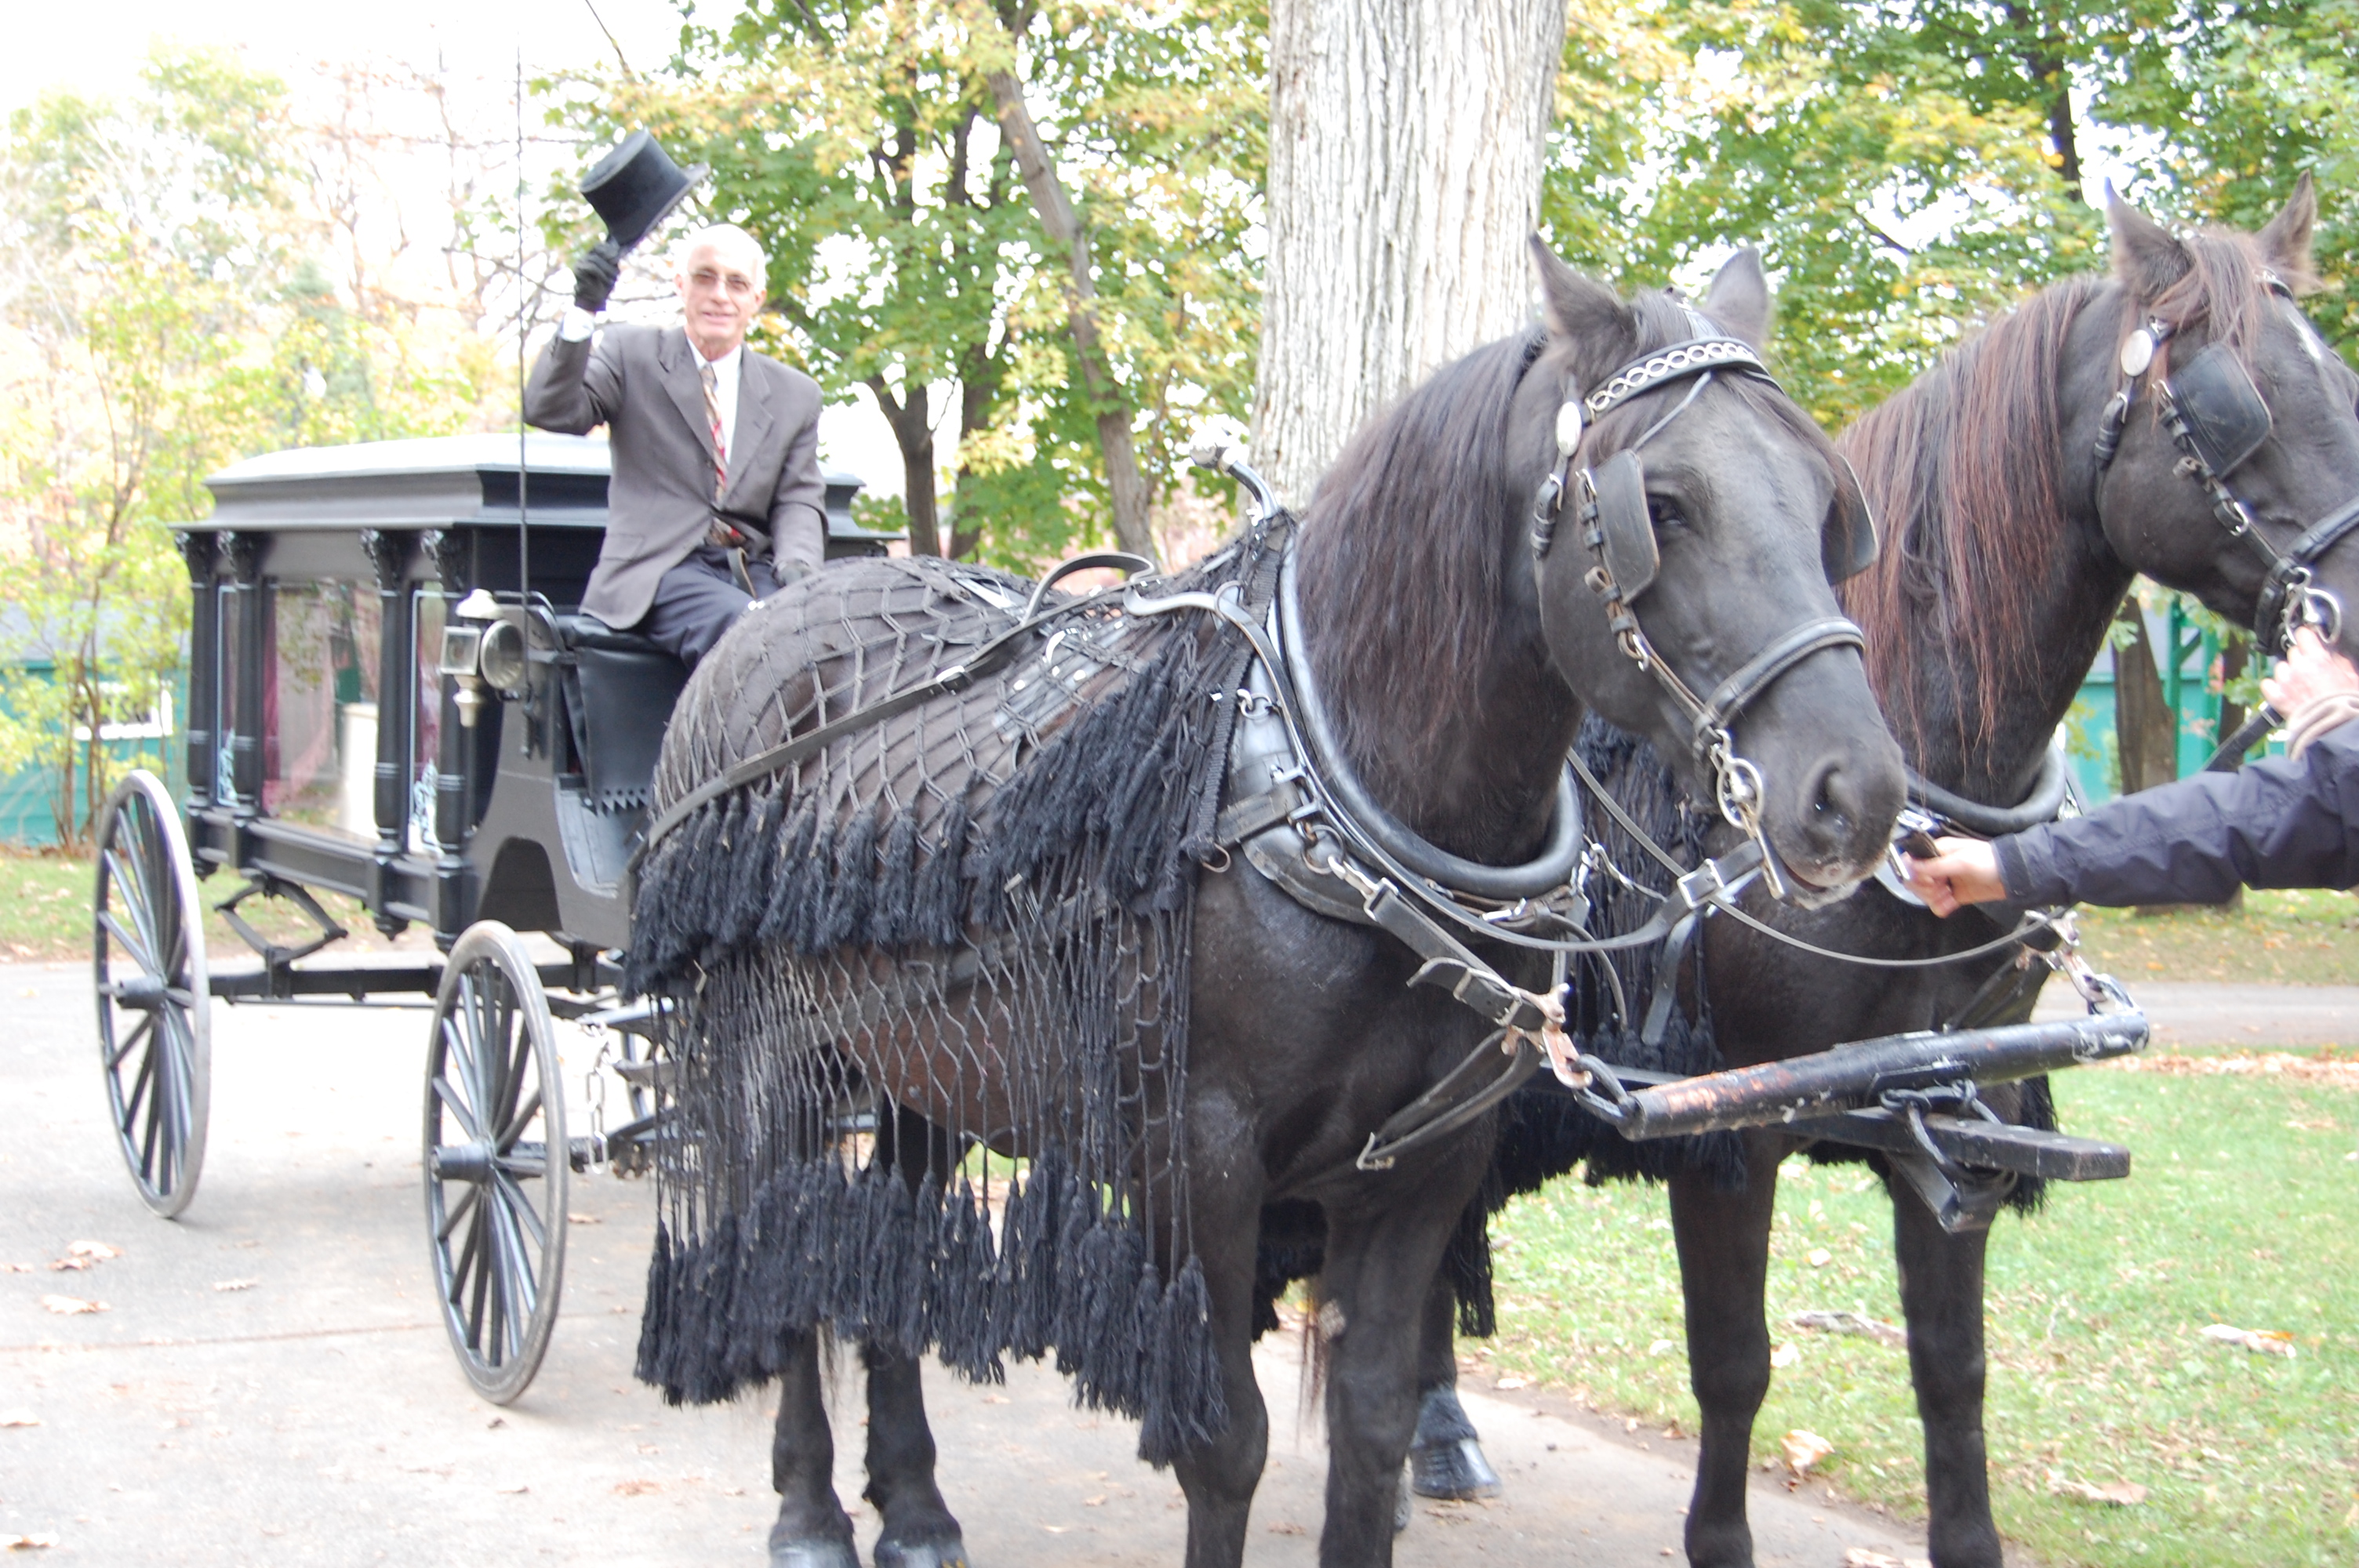 Coloured picture of a man sitting in front of a horse drawn hearse with two large horses.